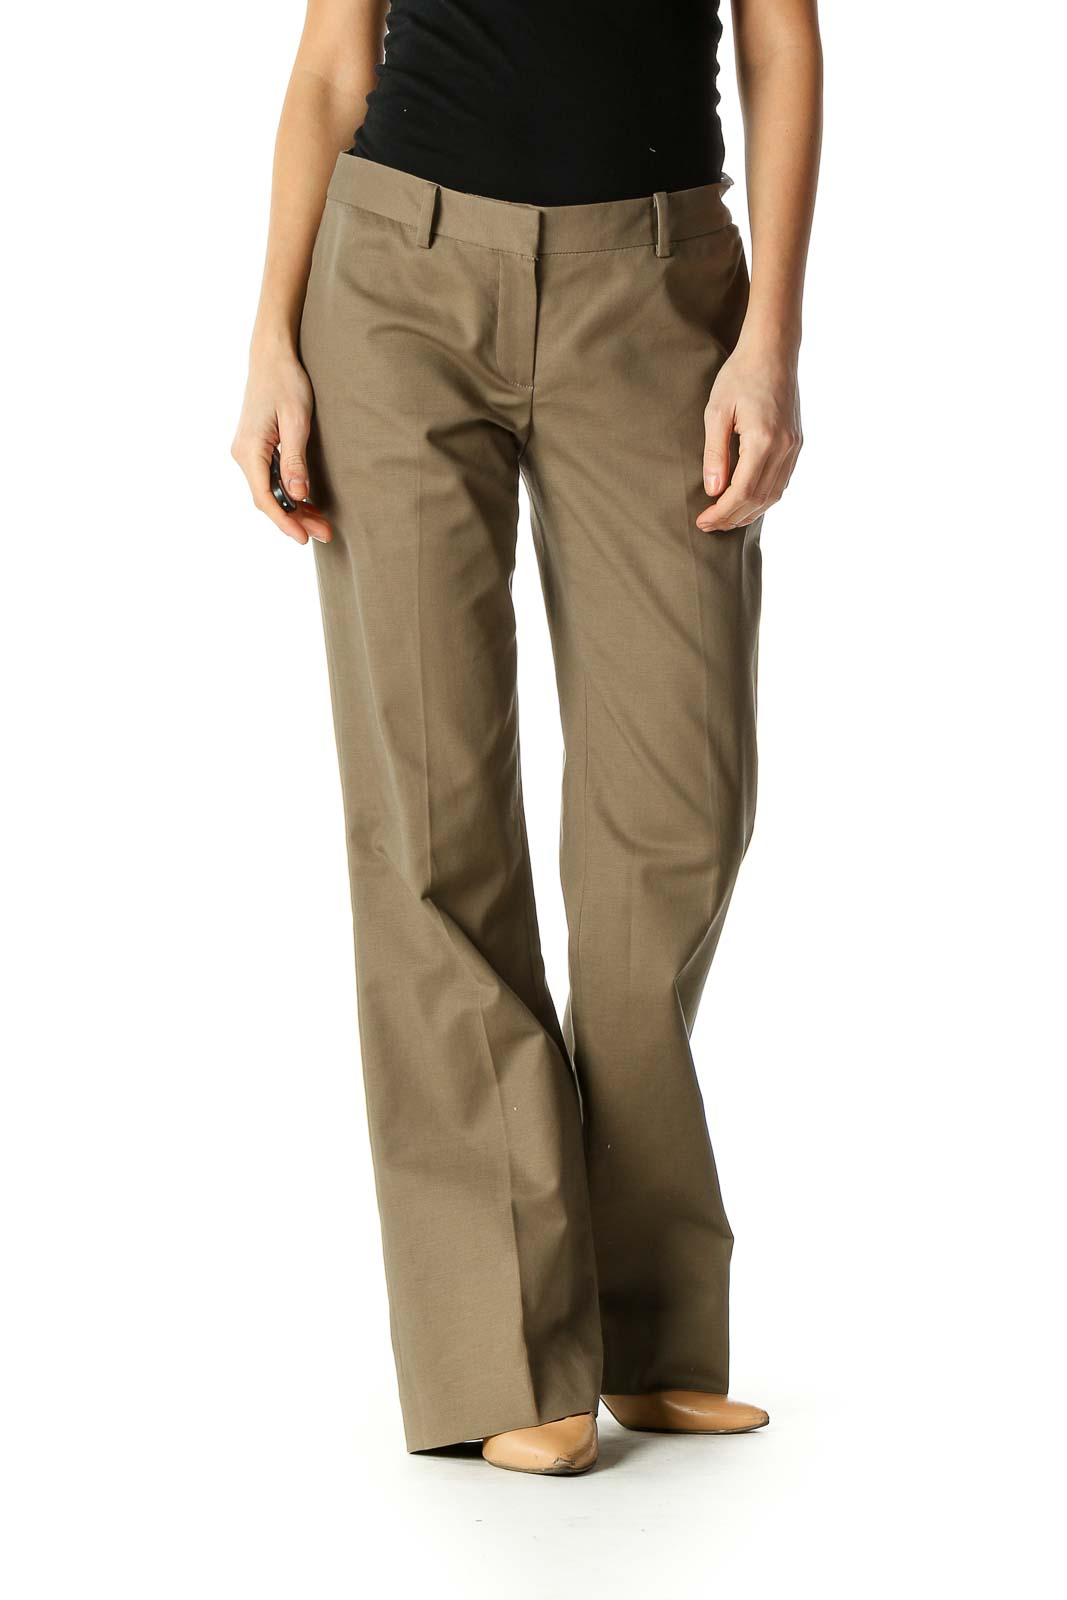 Brown Solid Formal Trousers Front